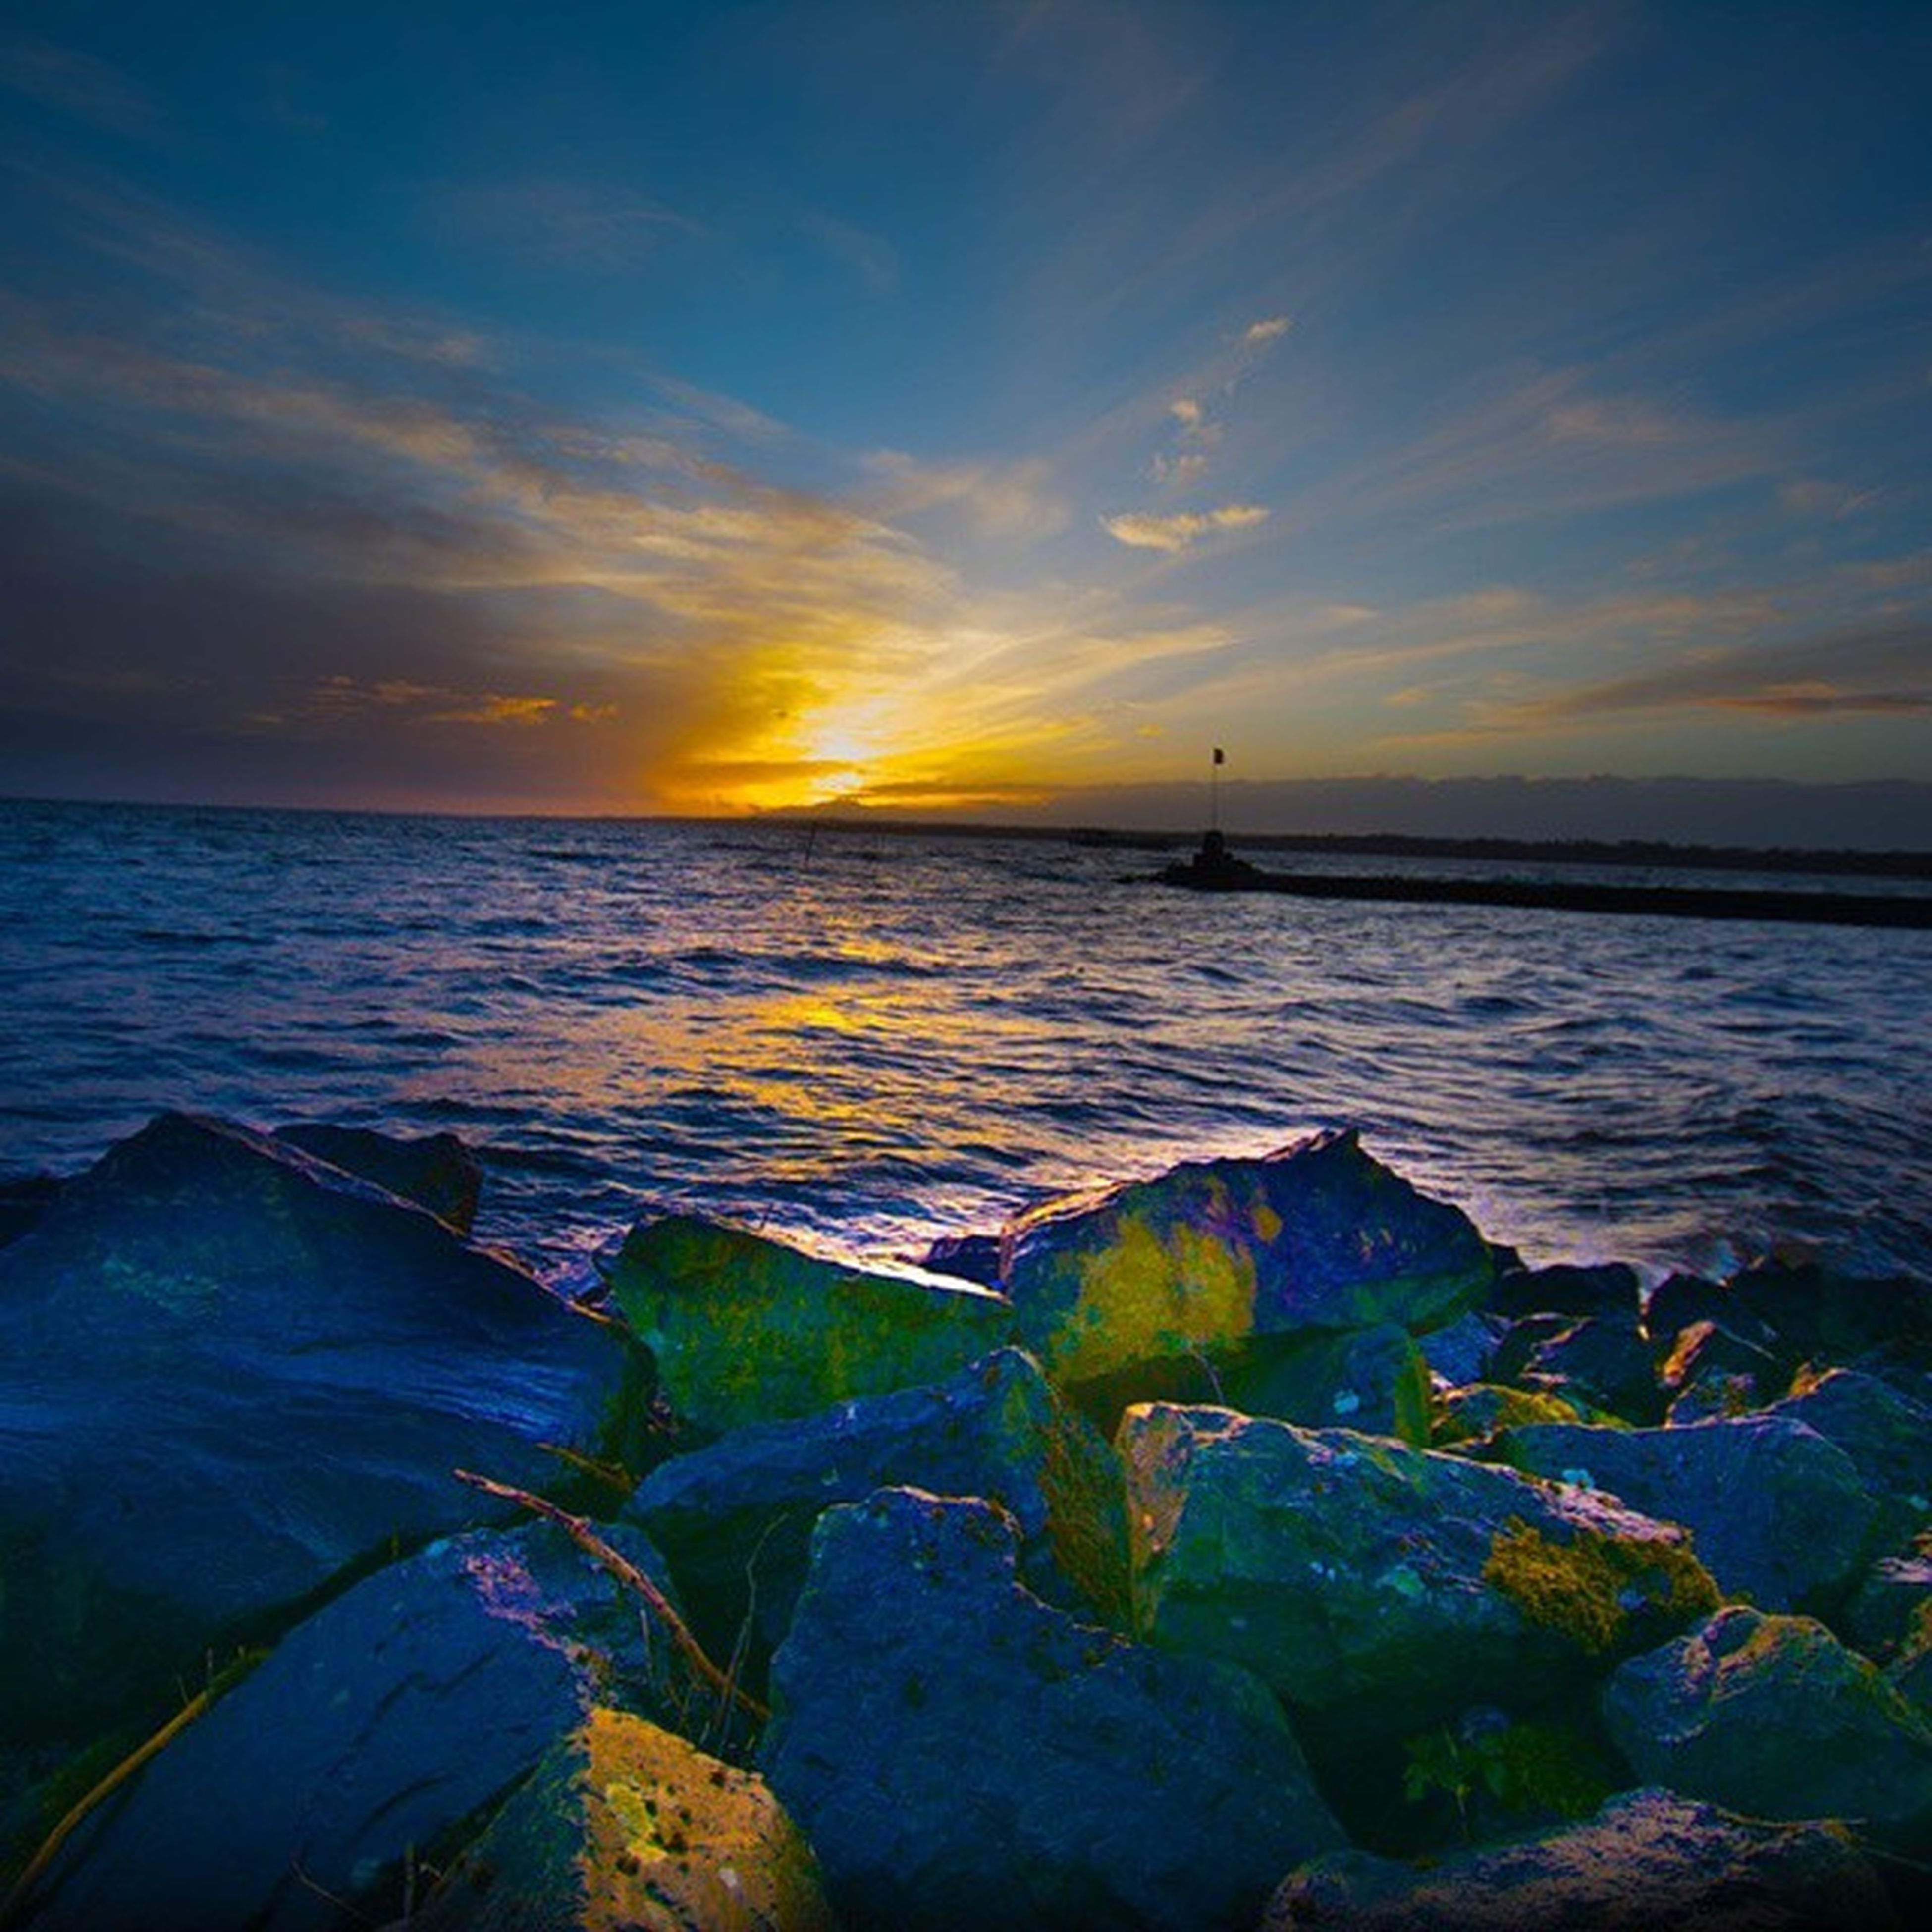 water, sunset, sea, sky, scenics, horizon over water, tranquil scene, beauty in nature, tranquility, nature, rock - object, sun, idyllic, cloud - sky, reflection, sunlight, orange color, shore, remote, outdoors